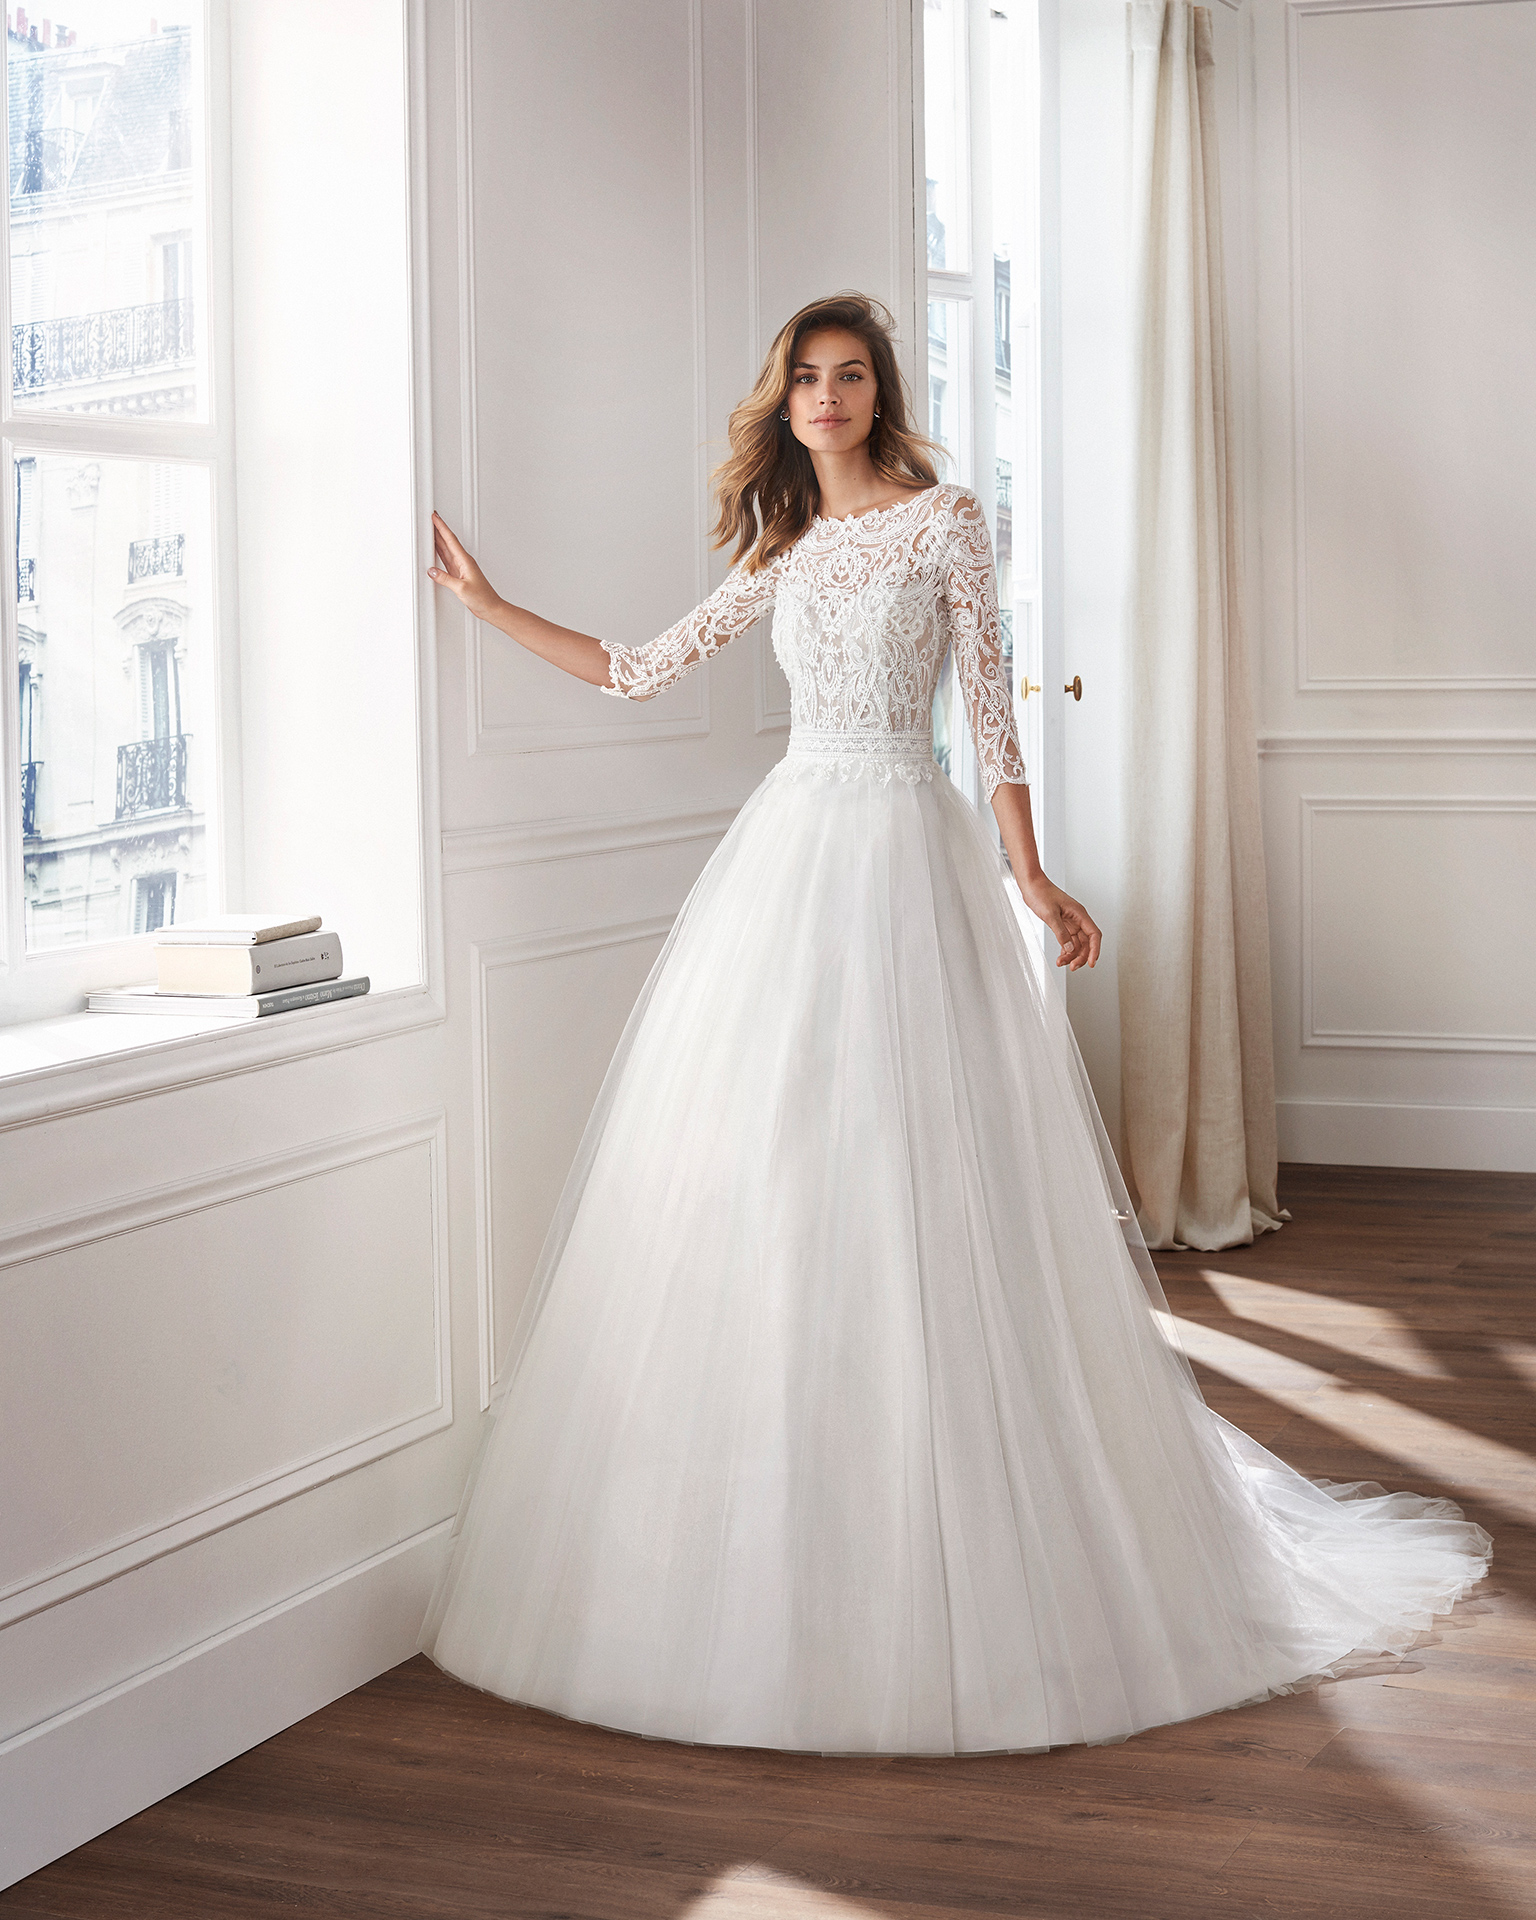 Tulle princess-style wedding dress. Illusion neckline, beaded lace bodice and long sleeves. Available in natural. 2019  Collection.